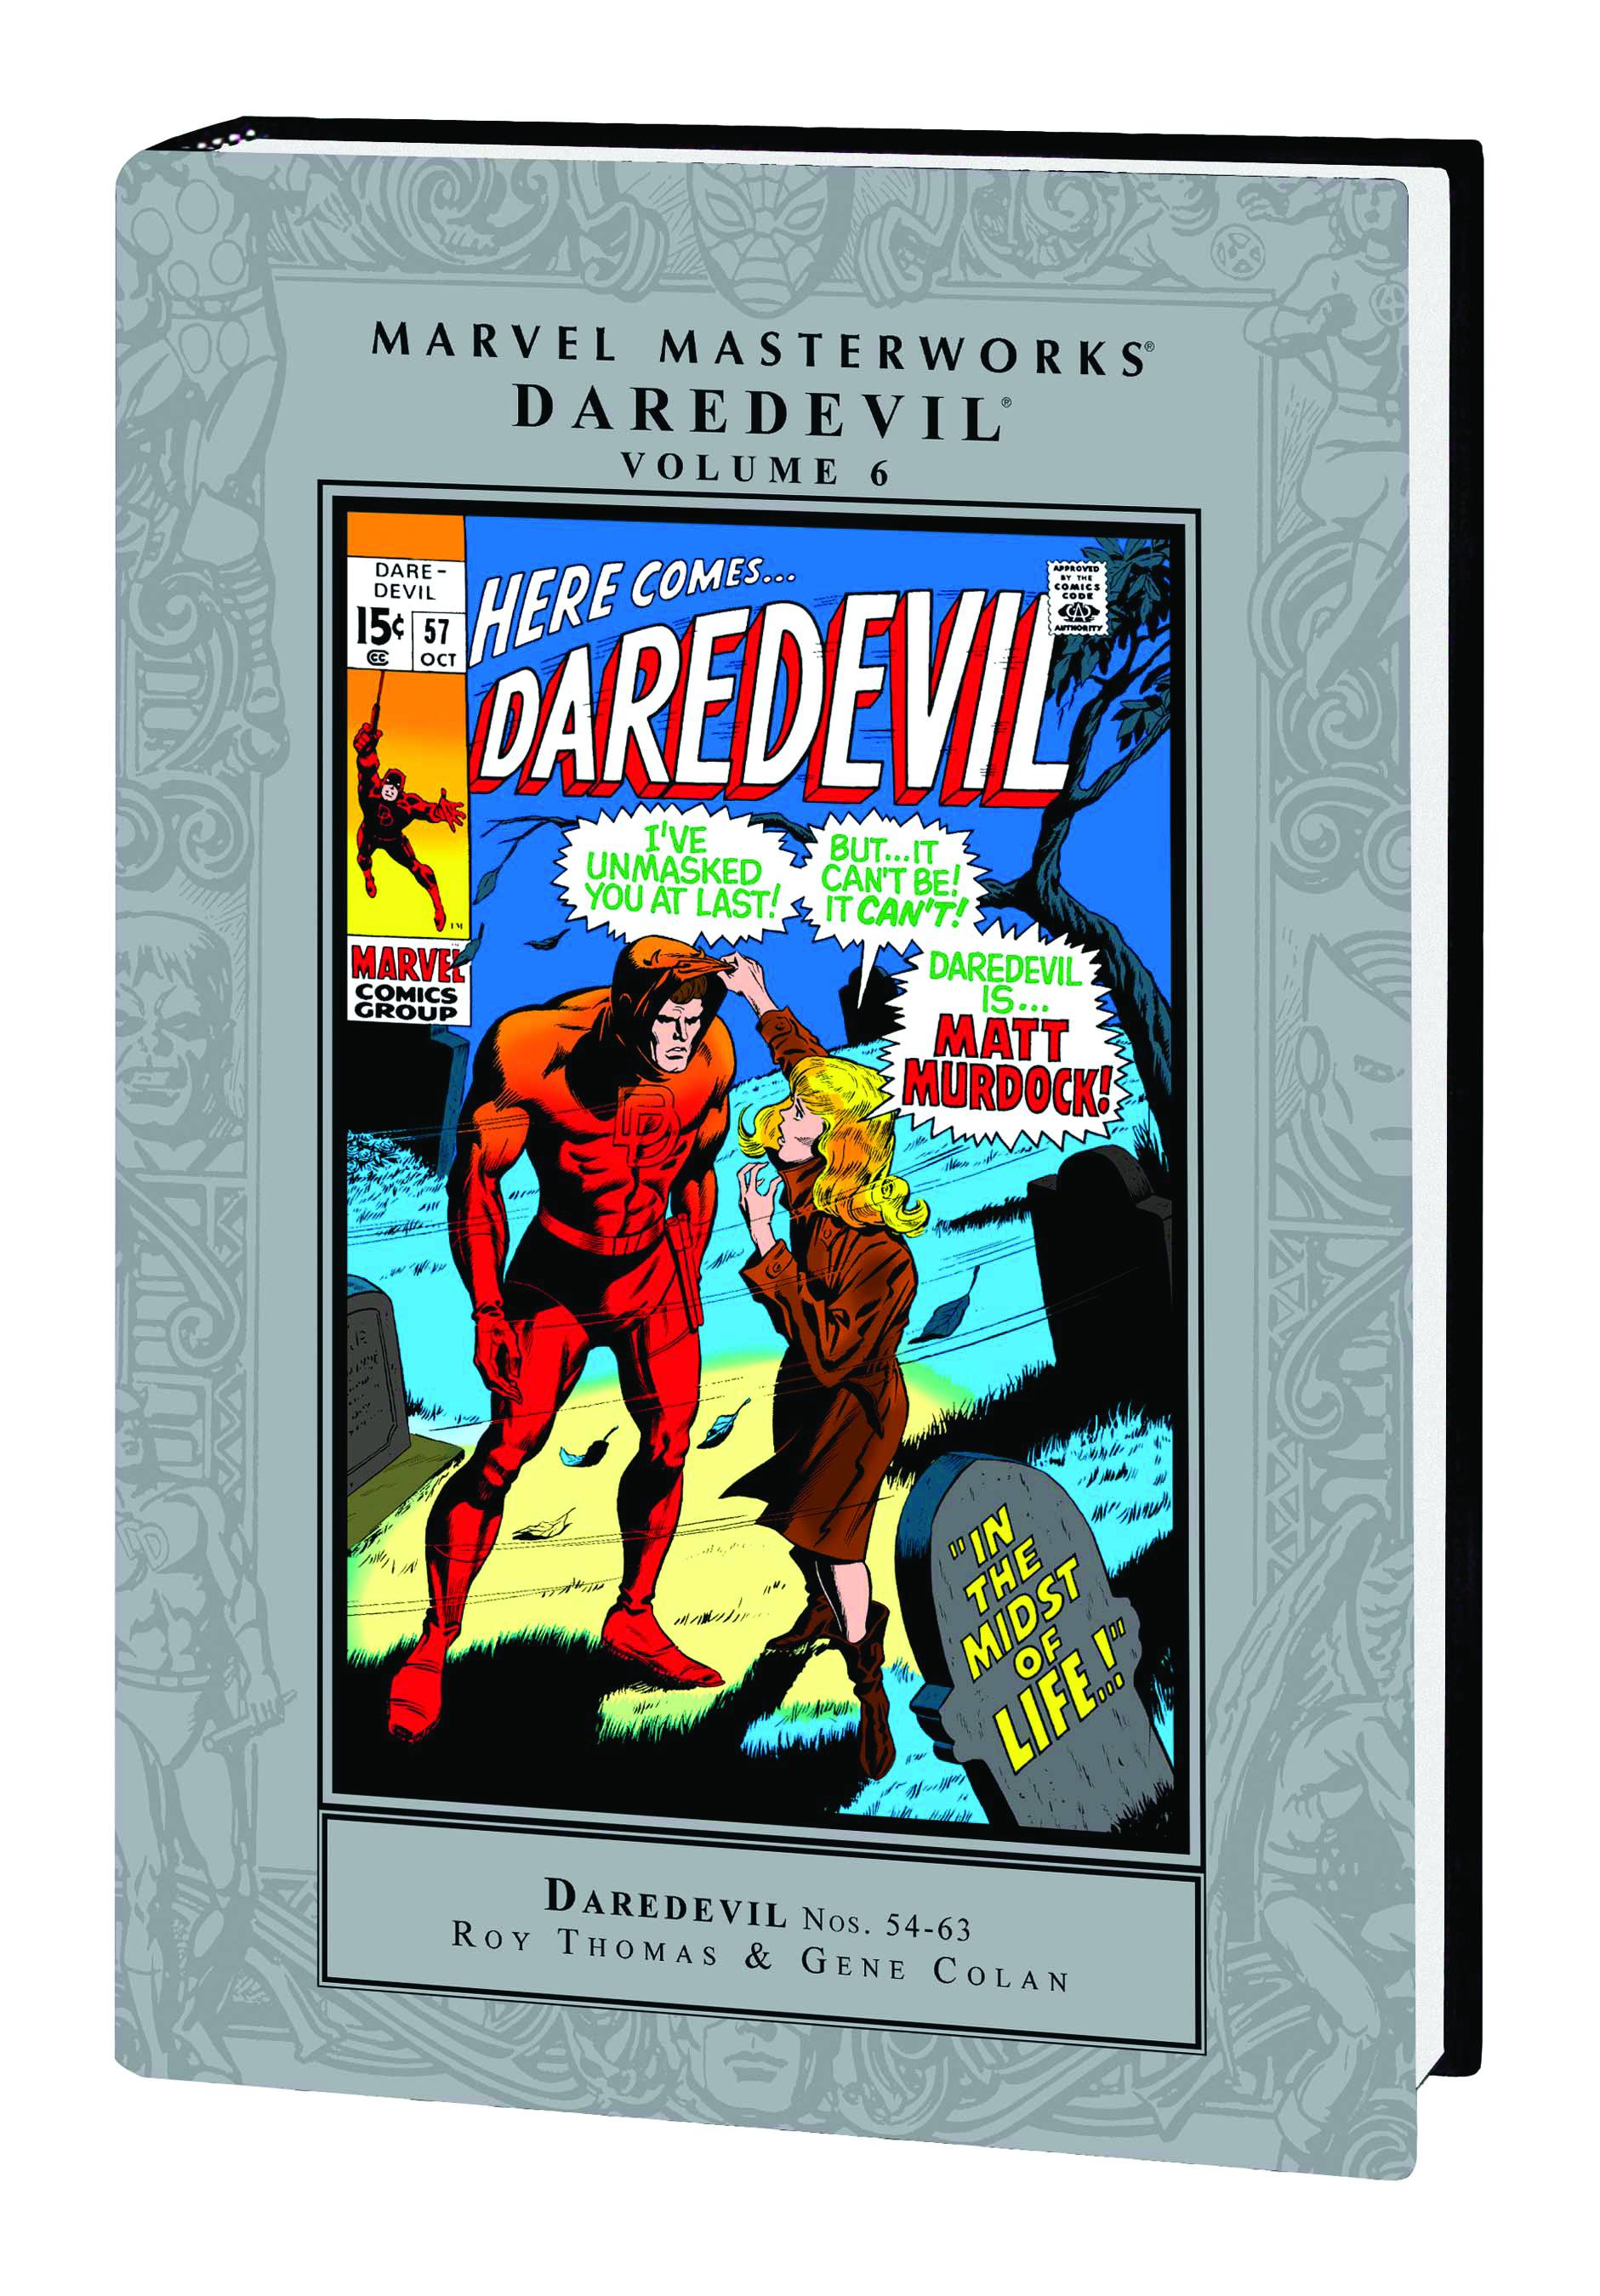 MMW DAREDEVIL HC VOL 06